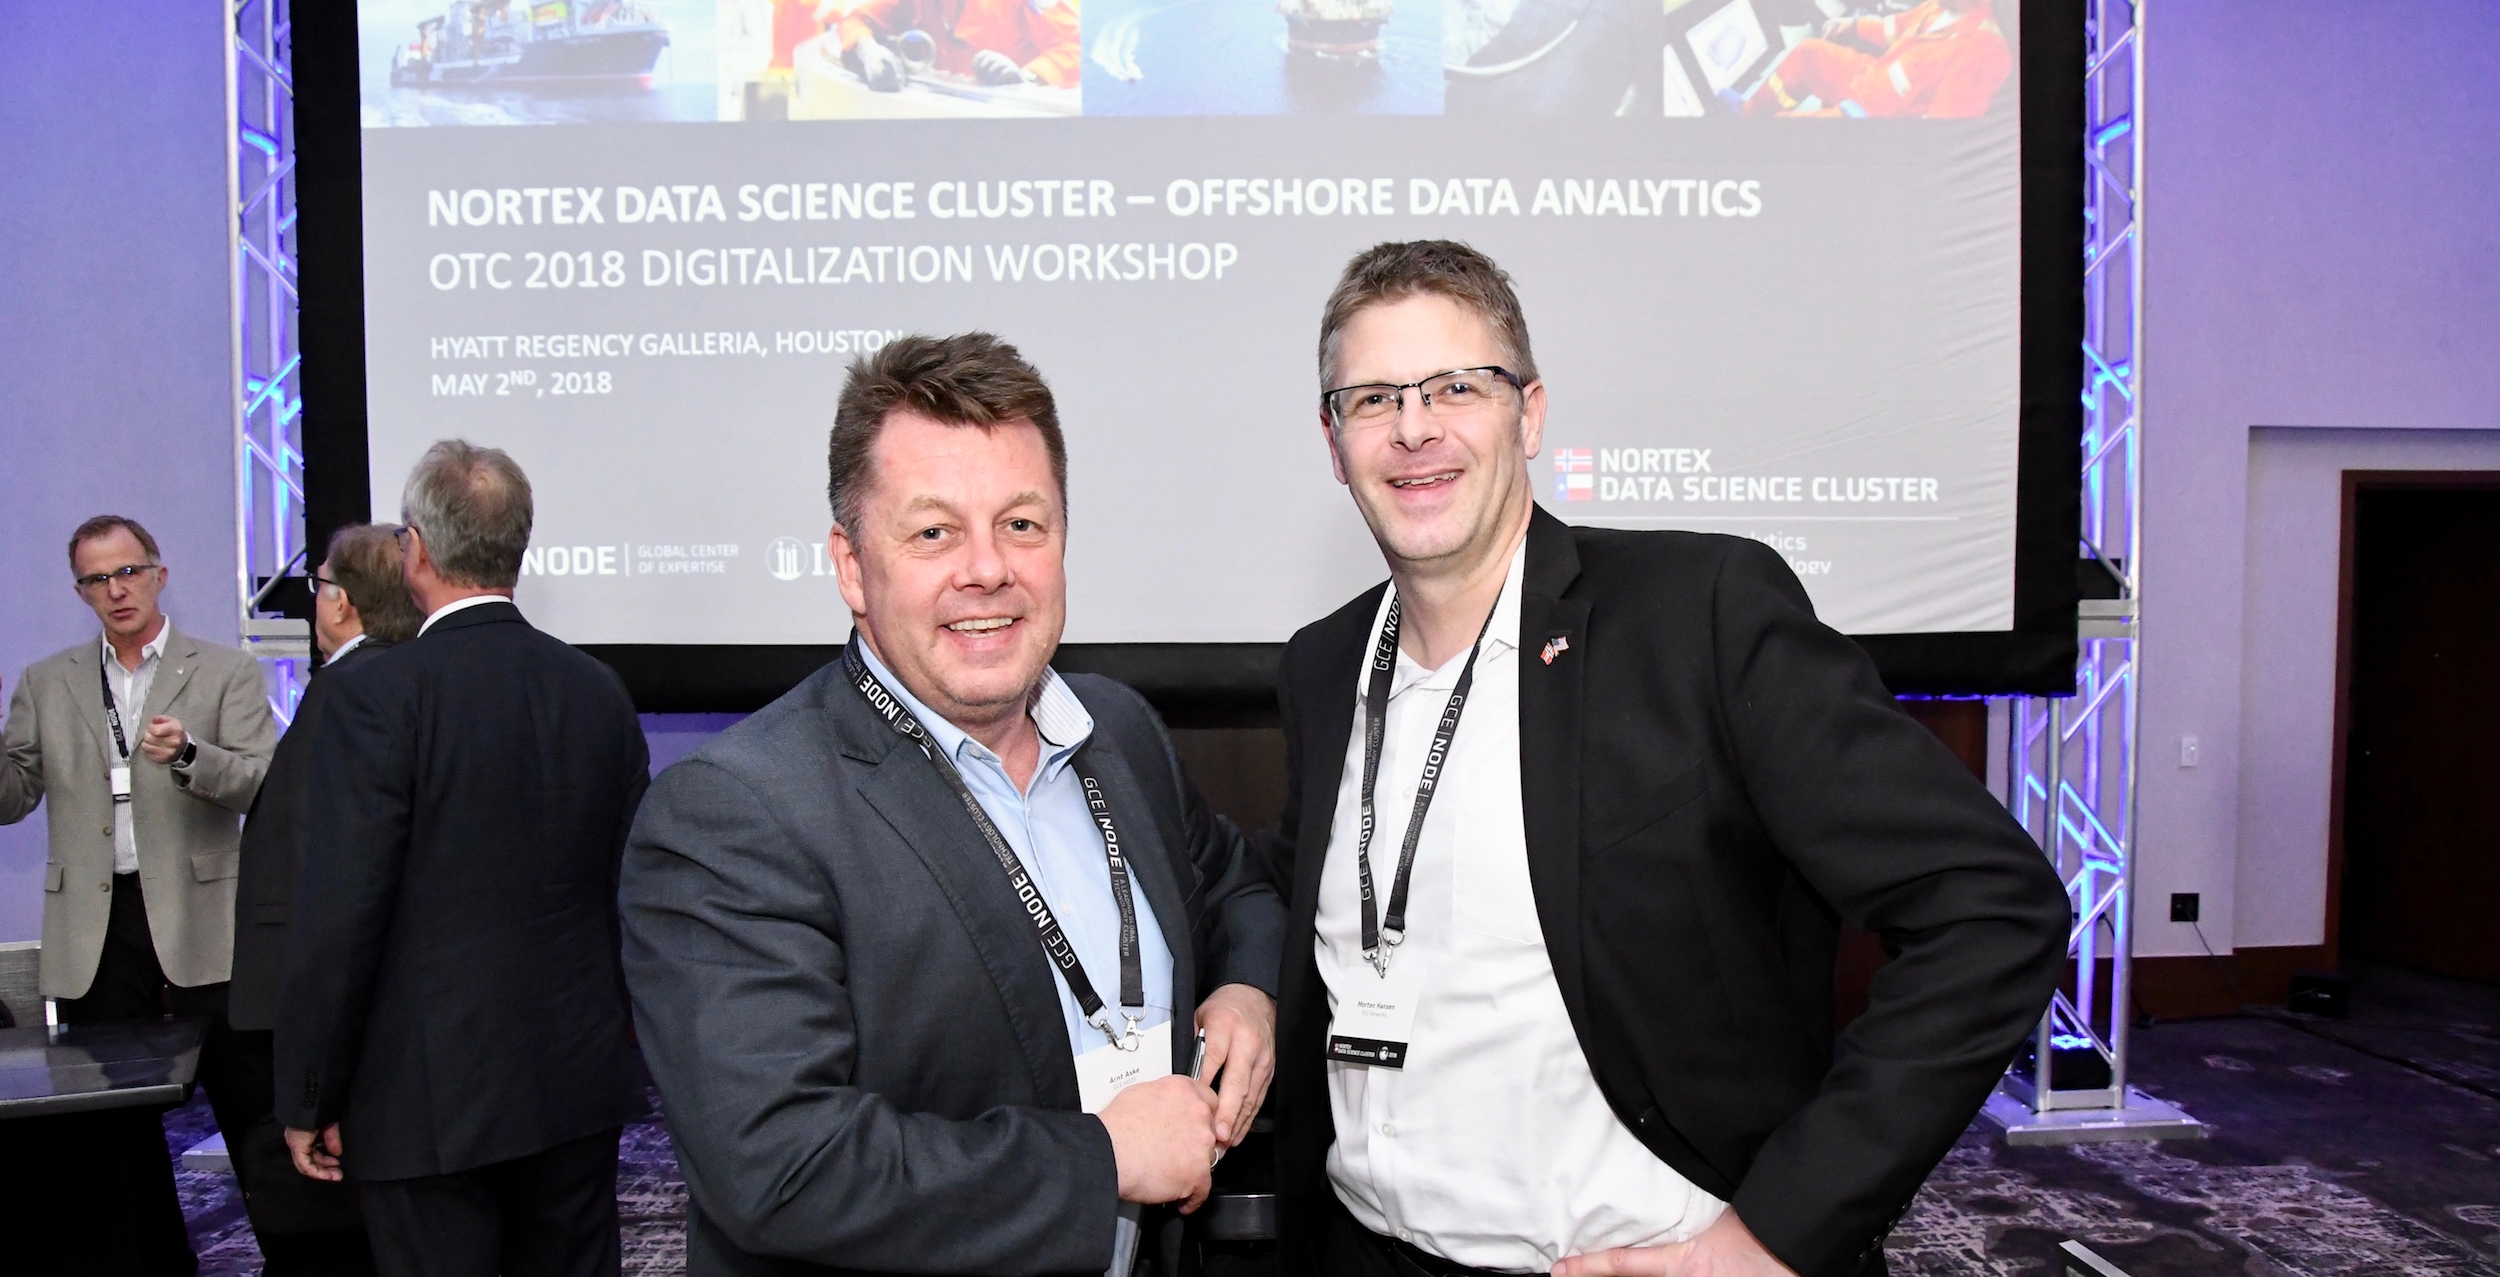 Morten Hagland Hansen at satellite operator SES (right) enjoyed the NorTex Data Science Cluster Digitalization Workshop in Houston, led by Arnt Aske, Business Development Digitalization at GCE NODE.